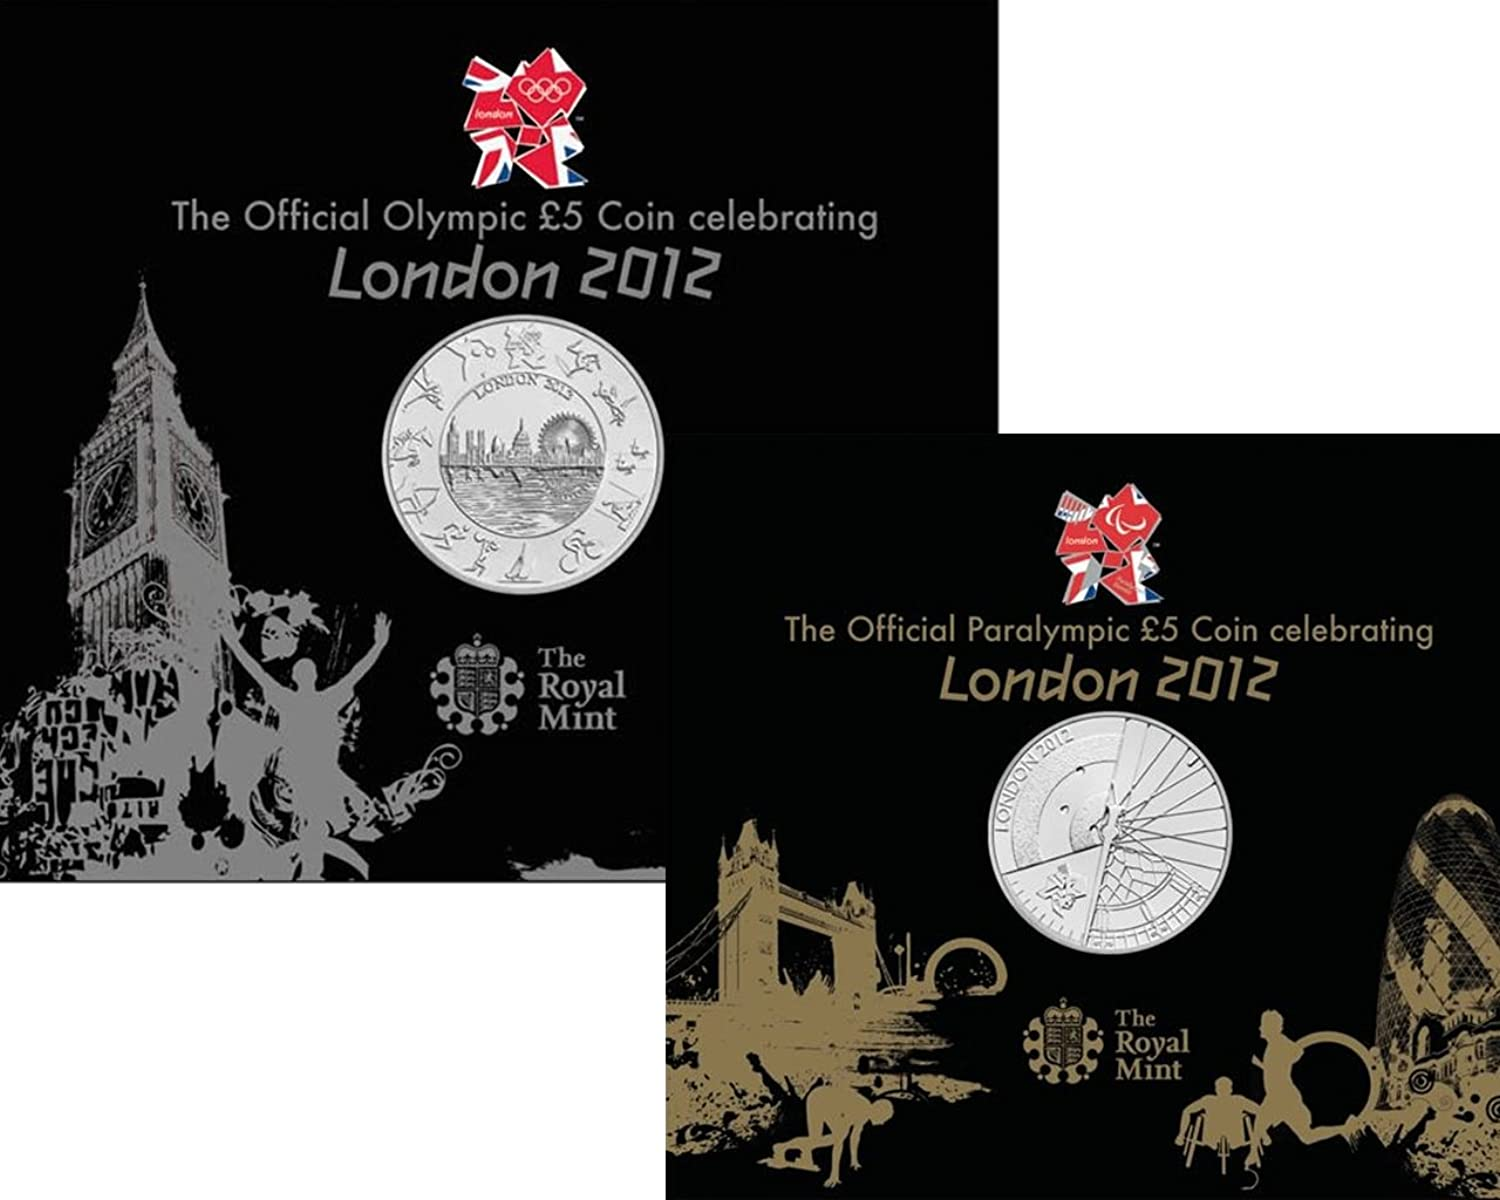 TWIN PACK The London 2012 OLYMPIC & PARALYMPIC Brilliant Uncirculated £5 Coins